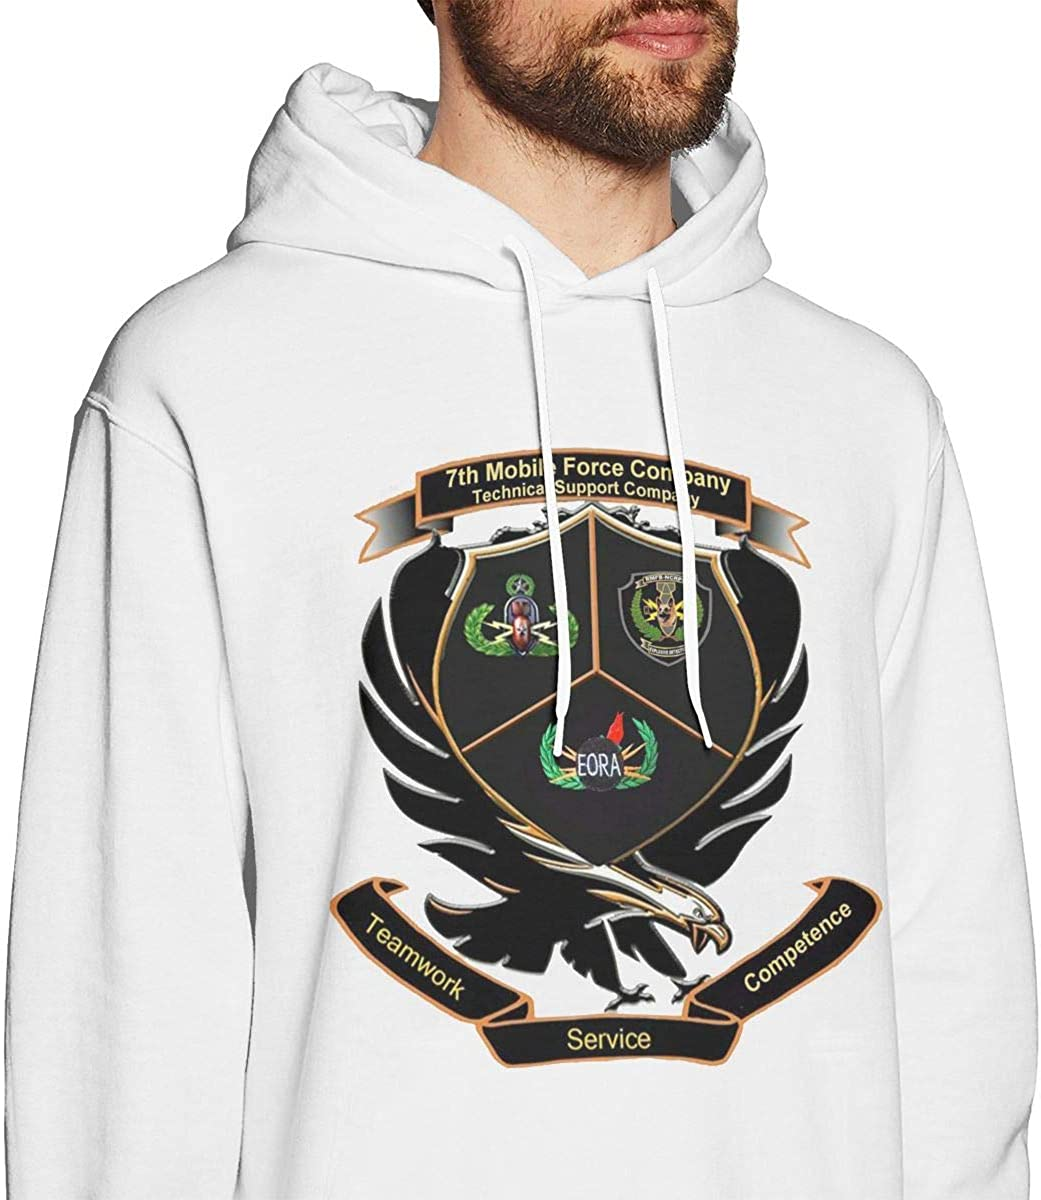 7th Mobile Force Company Mens Pullover Hooded Sweatshirt Cozy Sport Outwear